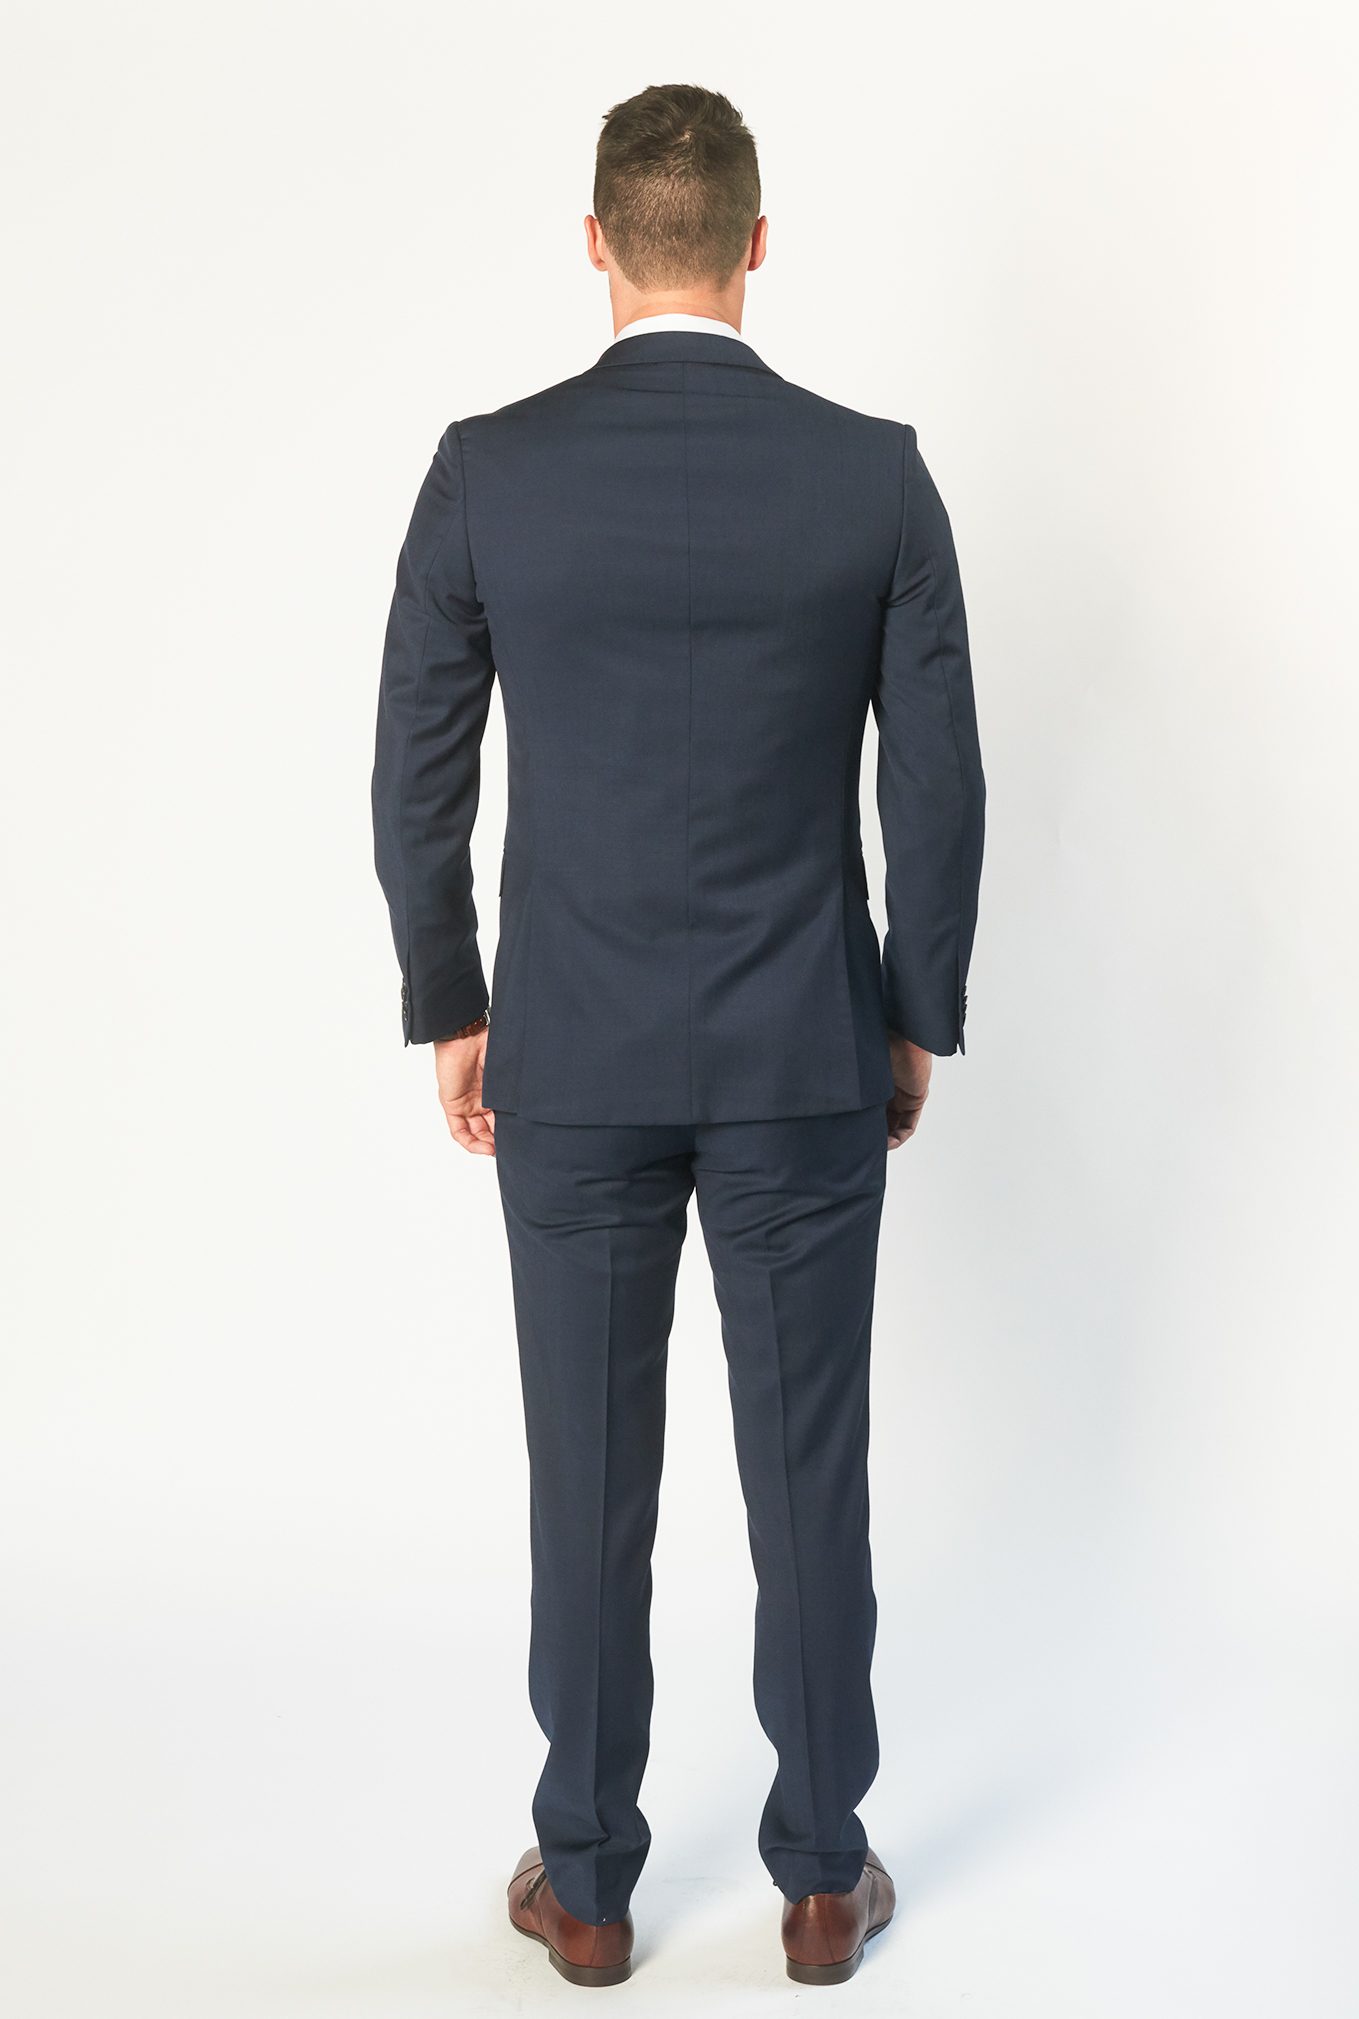 The Icon navy blue suit back view